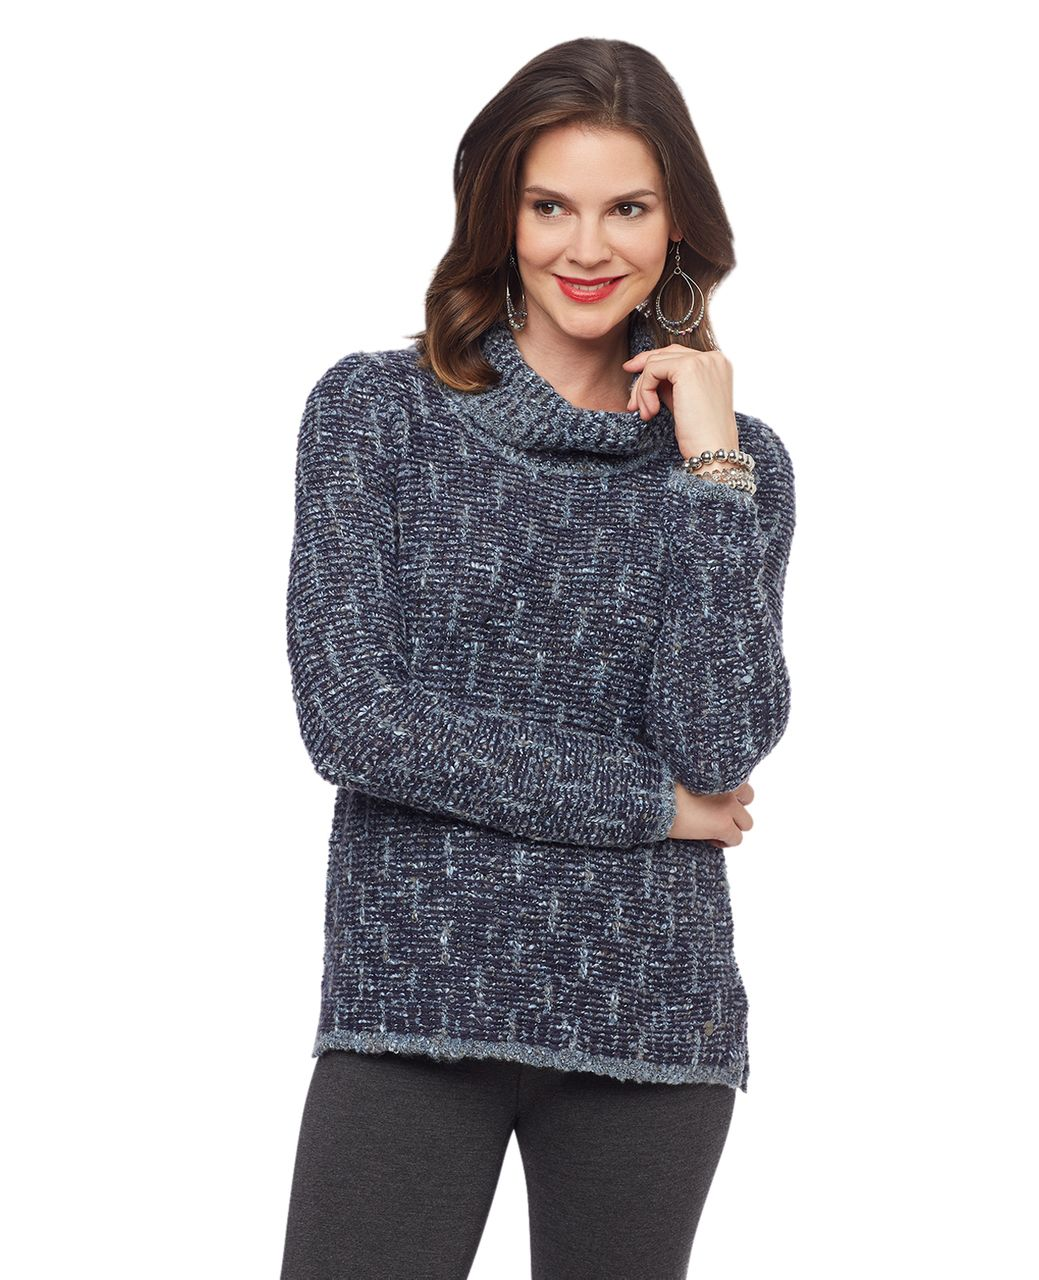 Northern Reflections - NEW - Cozy Cowl Neck Sweater, $89.99 (http ...